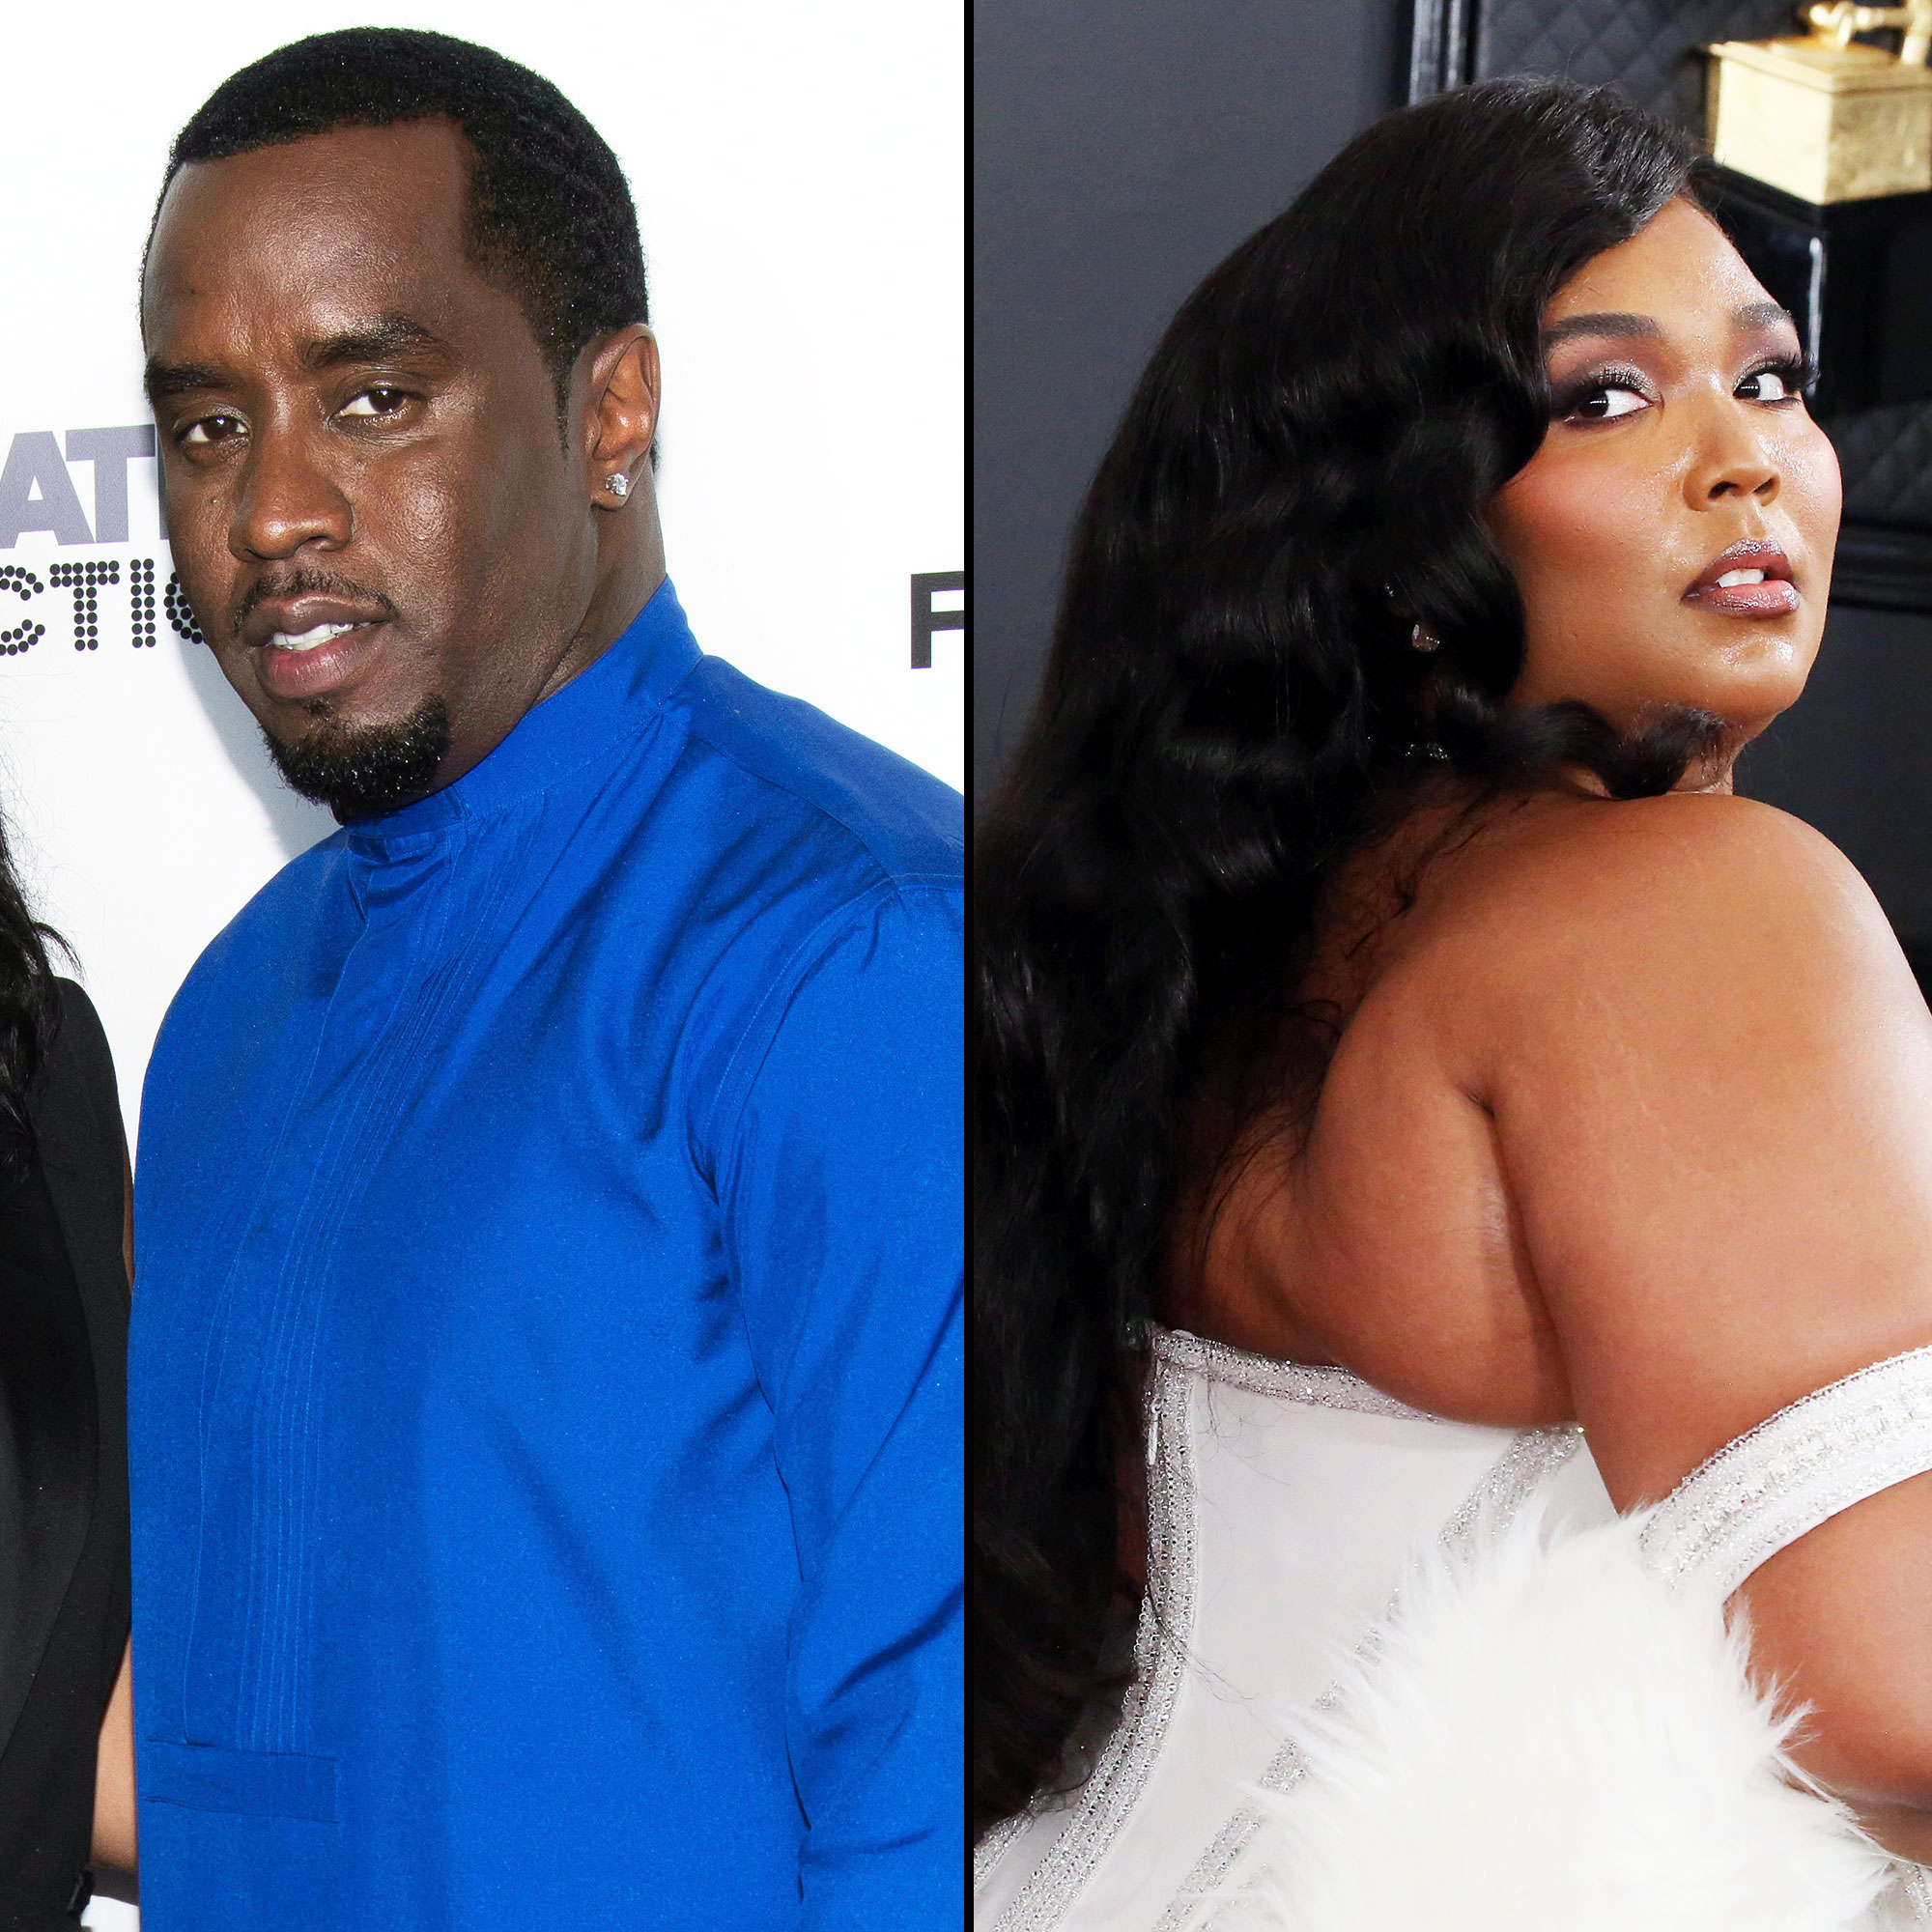 Diddy Responds to Claims That He Kept Lizzo From Twerking During an Instagram Dance Party